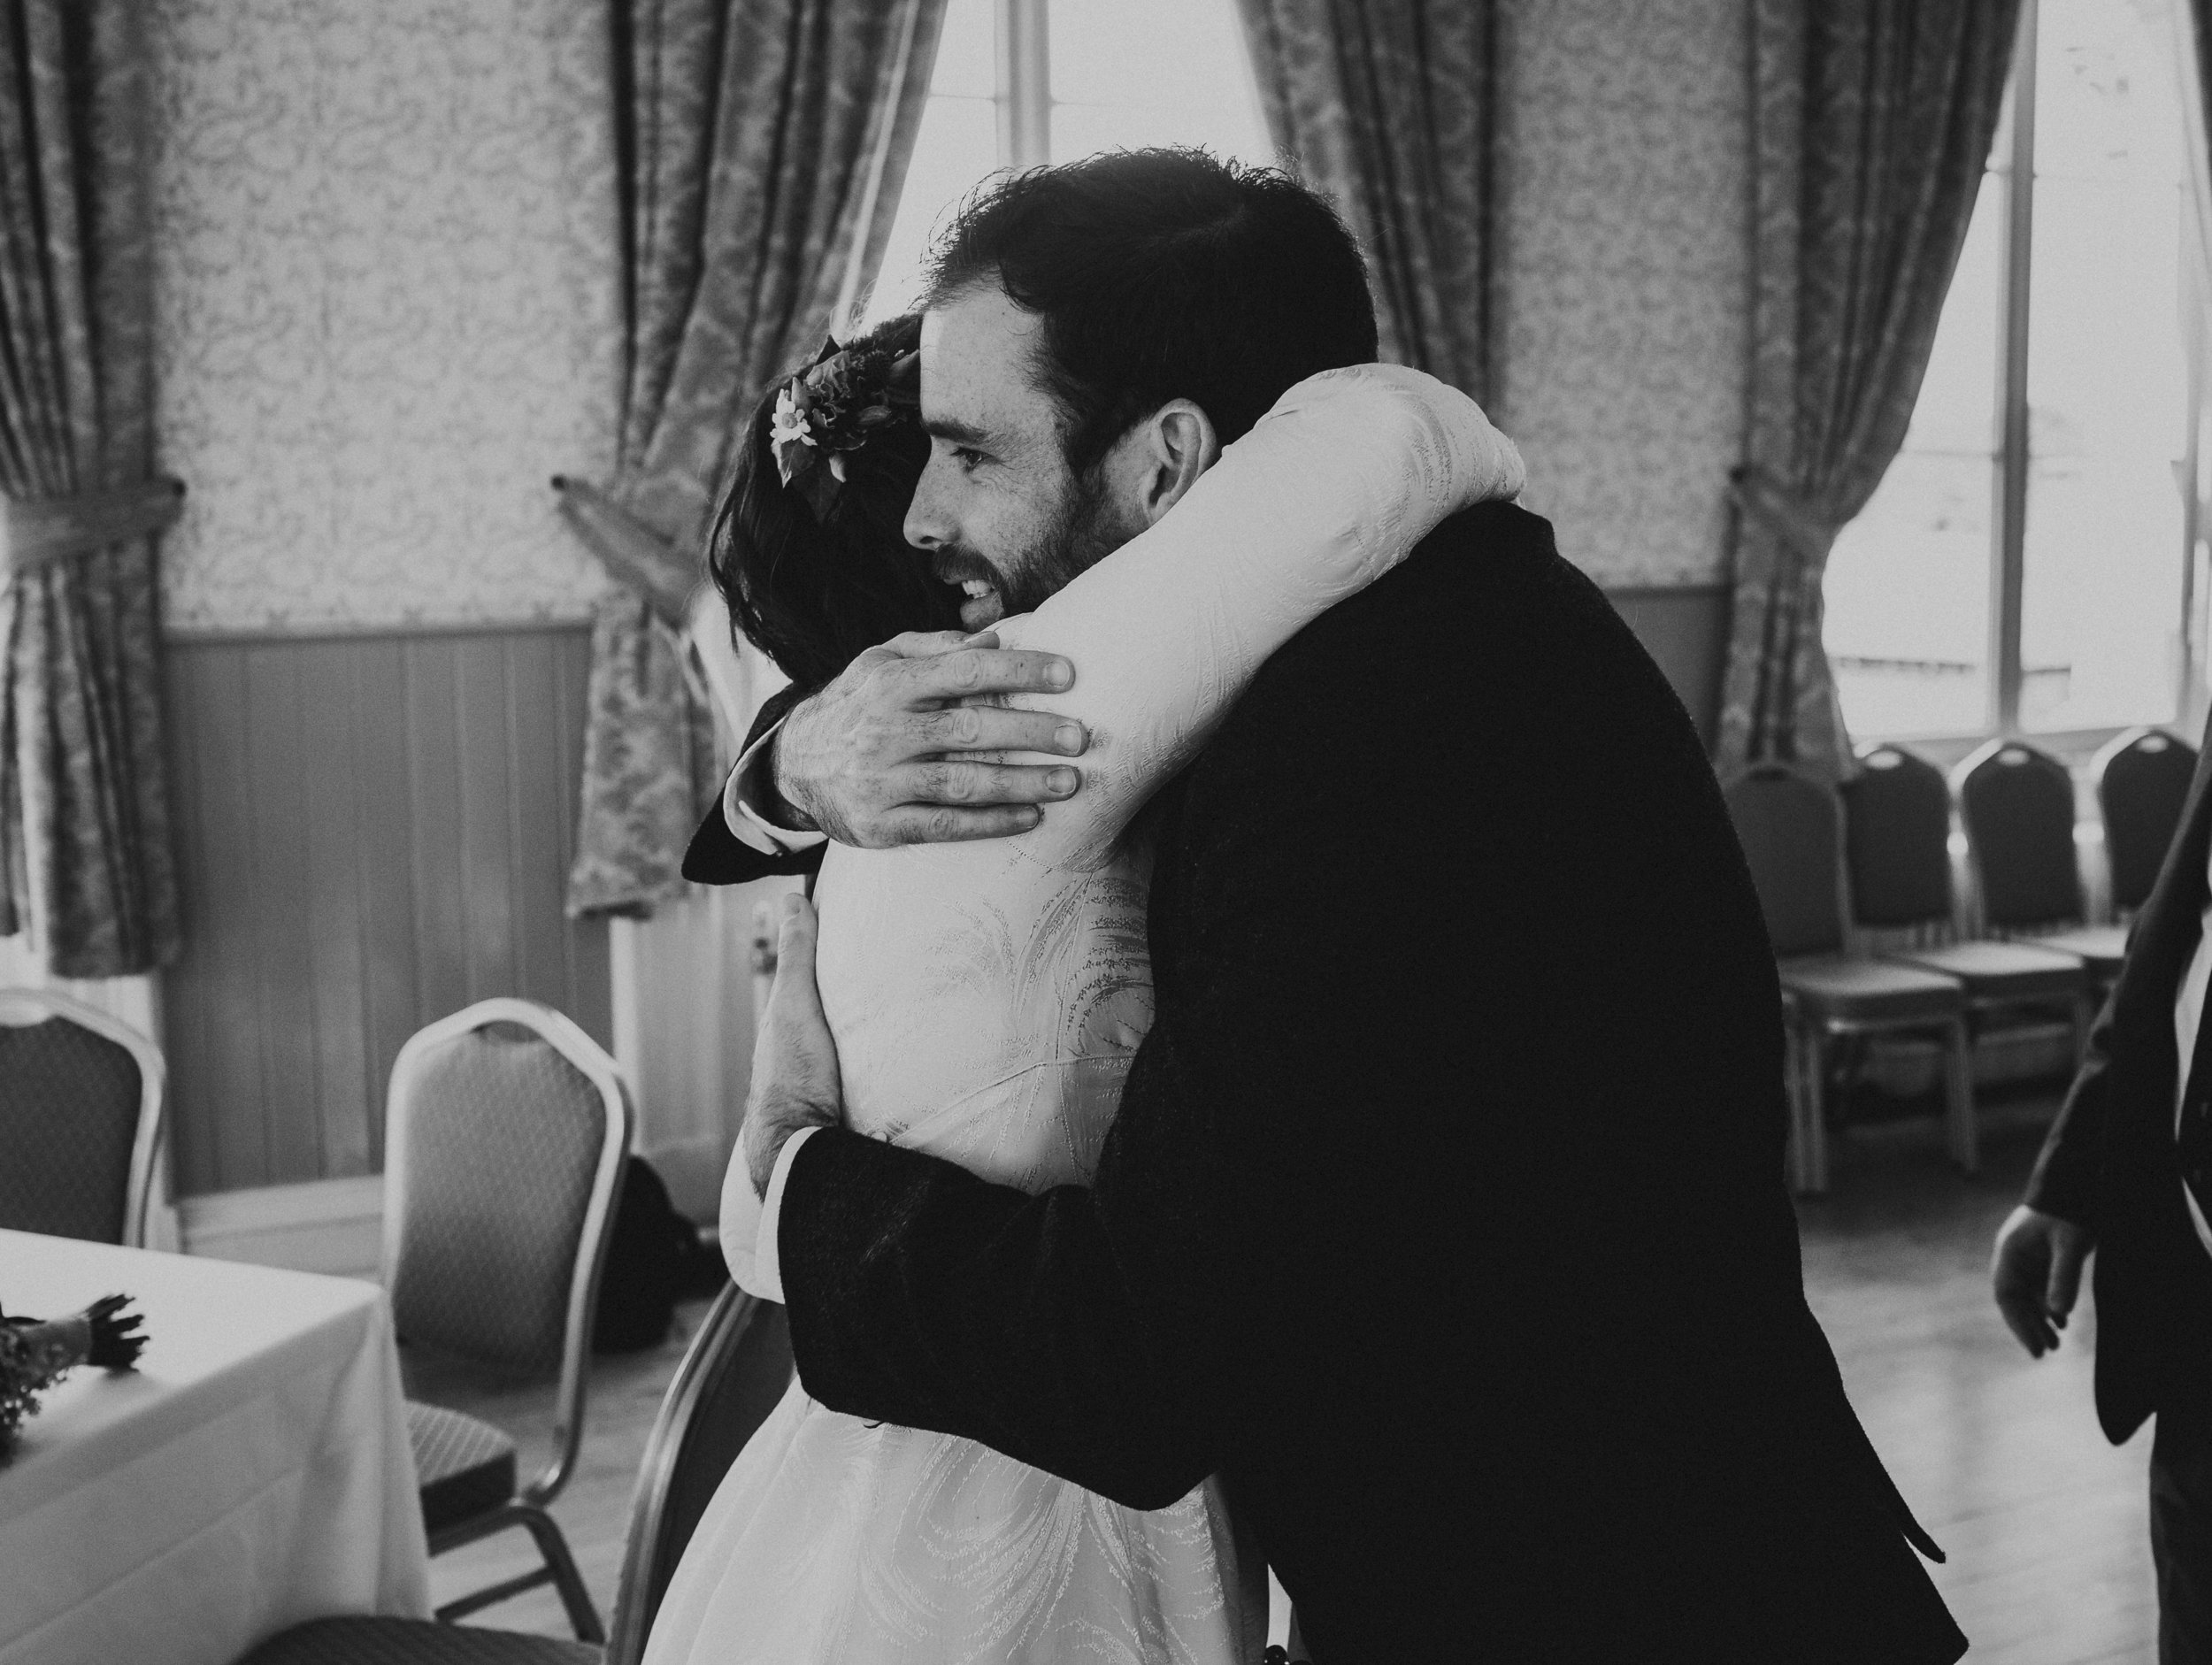 VICTORIA_HALL_SALTAIRE_VINTAGE_YORKSHIRE_WEDDING_PJ_PHILLIPS_PHOTOGRAPHY_55.jpg